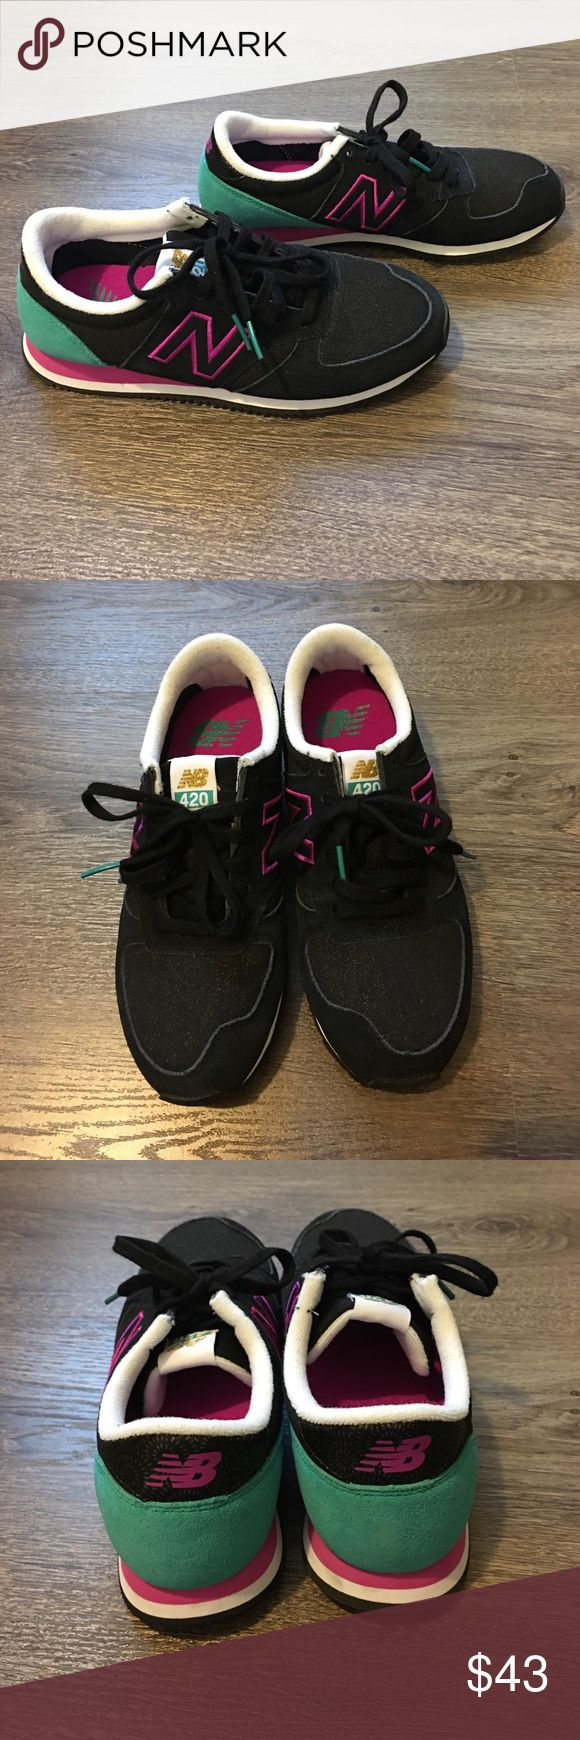 New Balance 420 women shoes Size 6, worn once, in excellent condition. Fits more like size 5.5. New Balance Shoes Sneakers